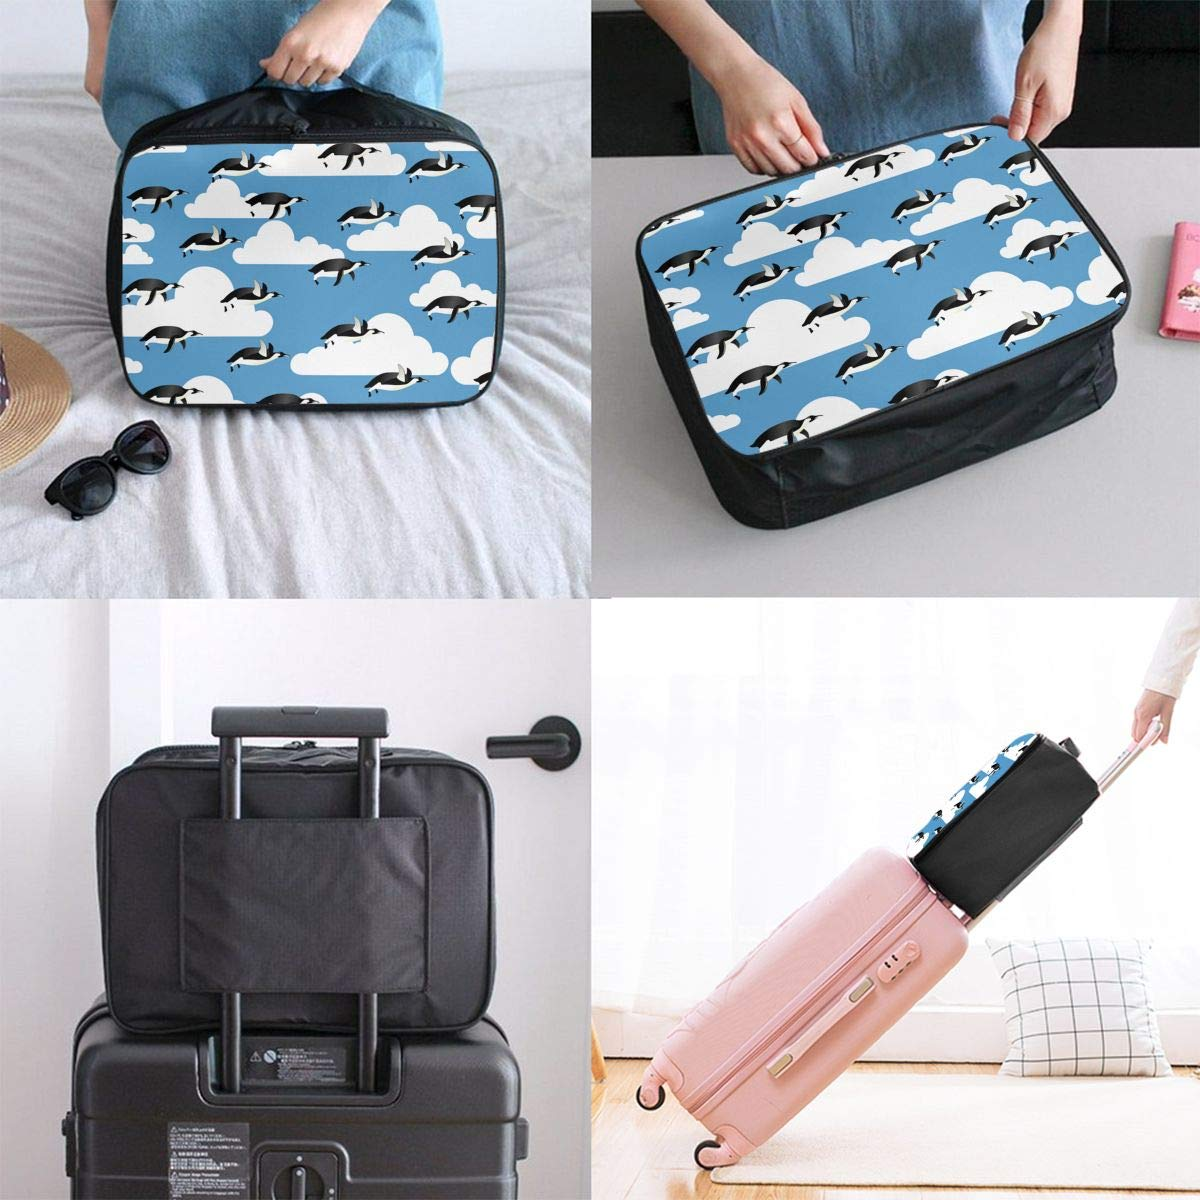 Flying Penguins Travel Bag Lightweight Luggage Bags Duffle Bag Large Capacity Travel Organizer Bag